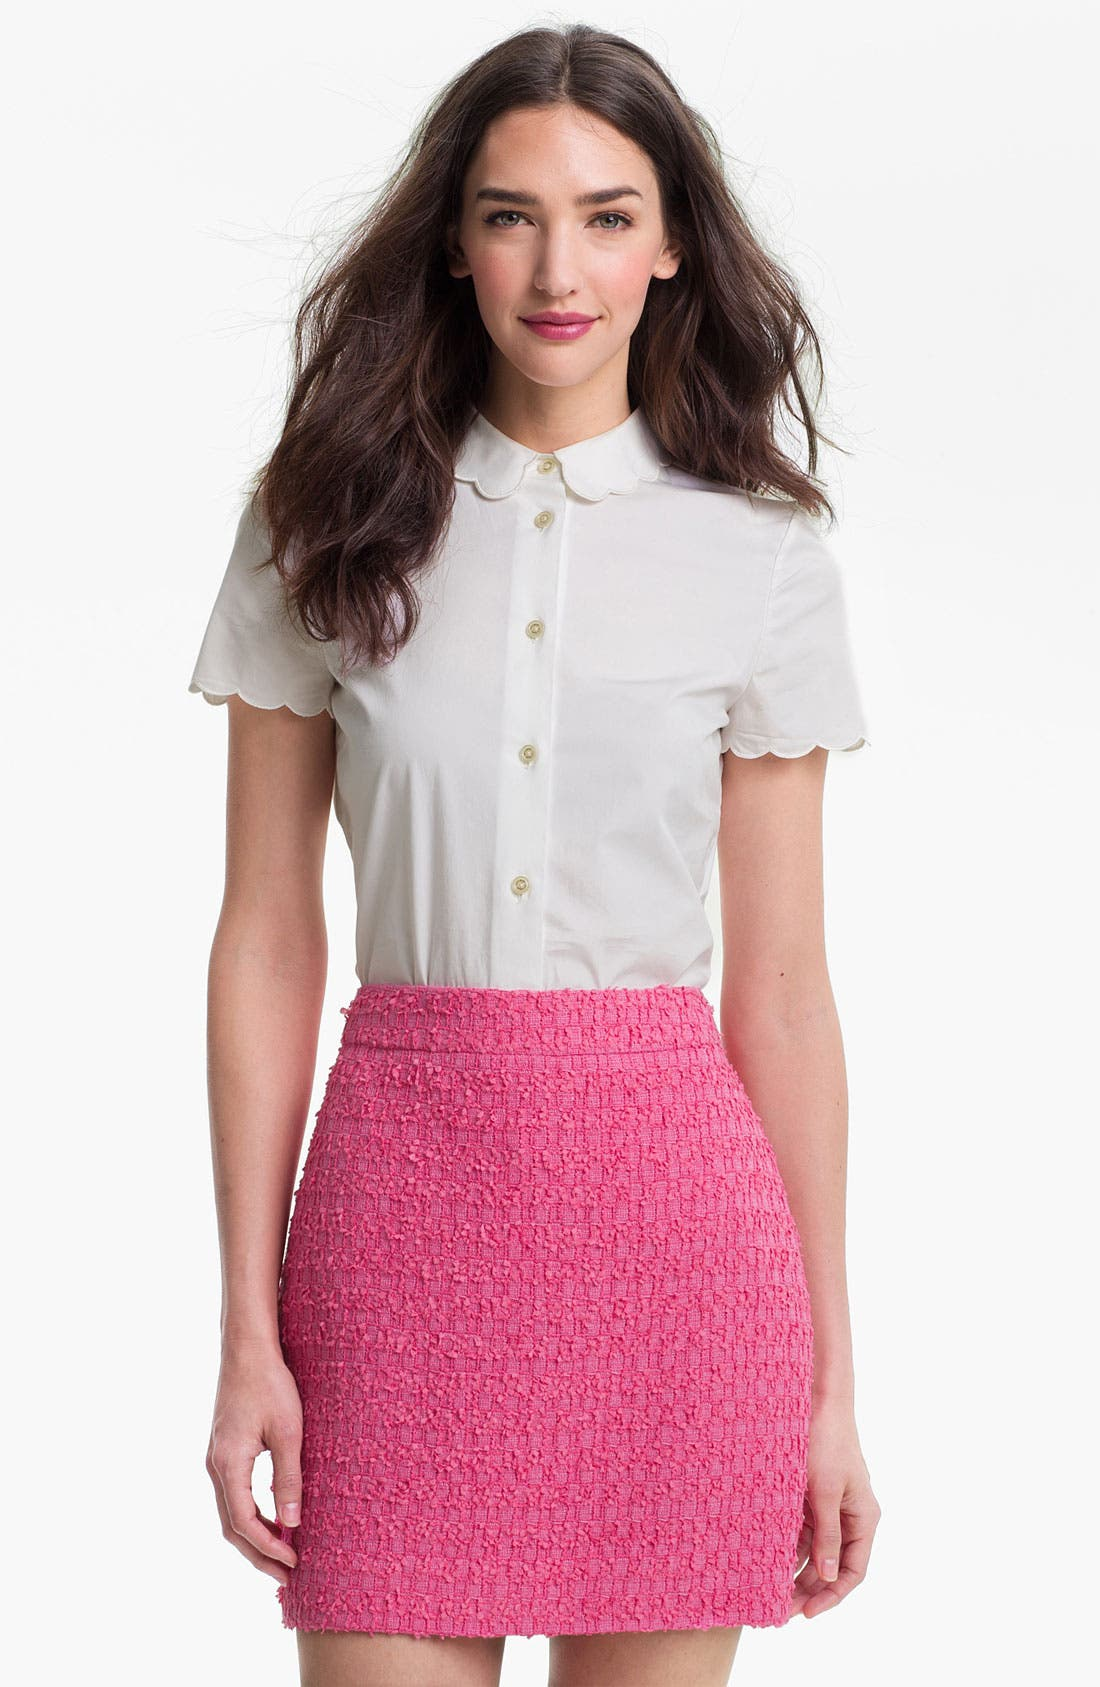 Alternate Image 1 Selected - kate spade new york 'helen' top